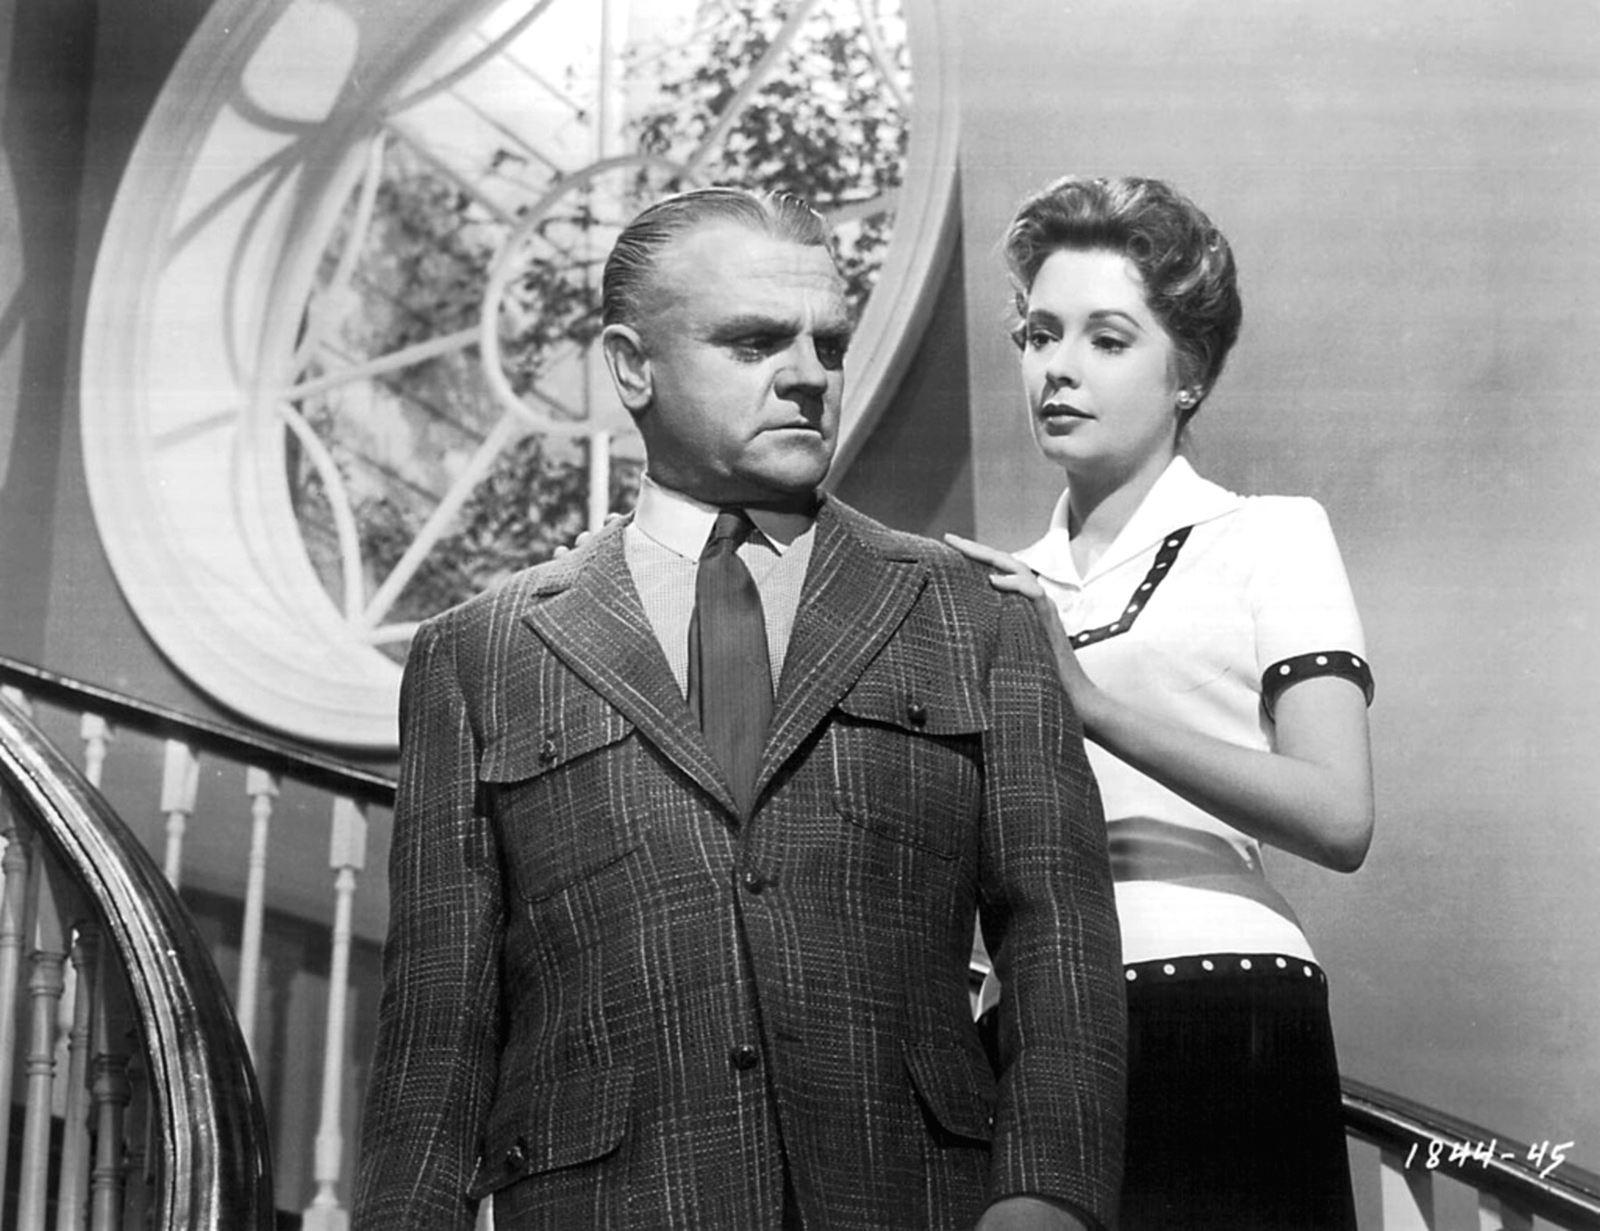 man-of-a-thousand-faces-cagney.jpg